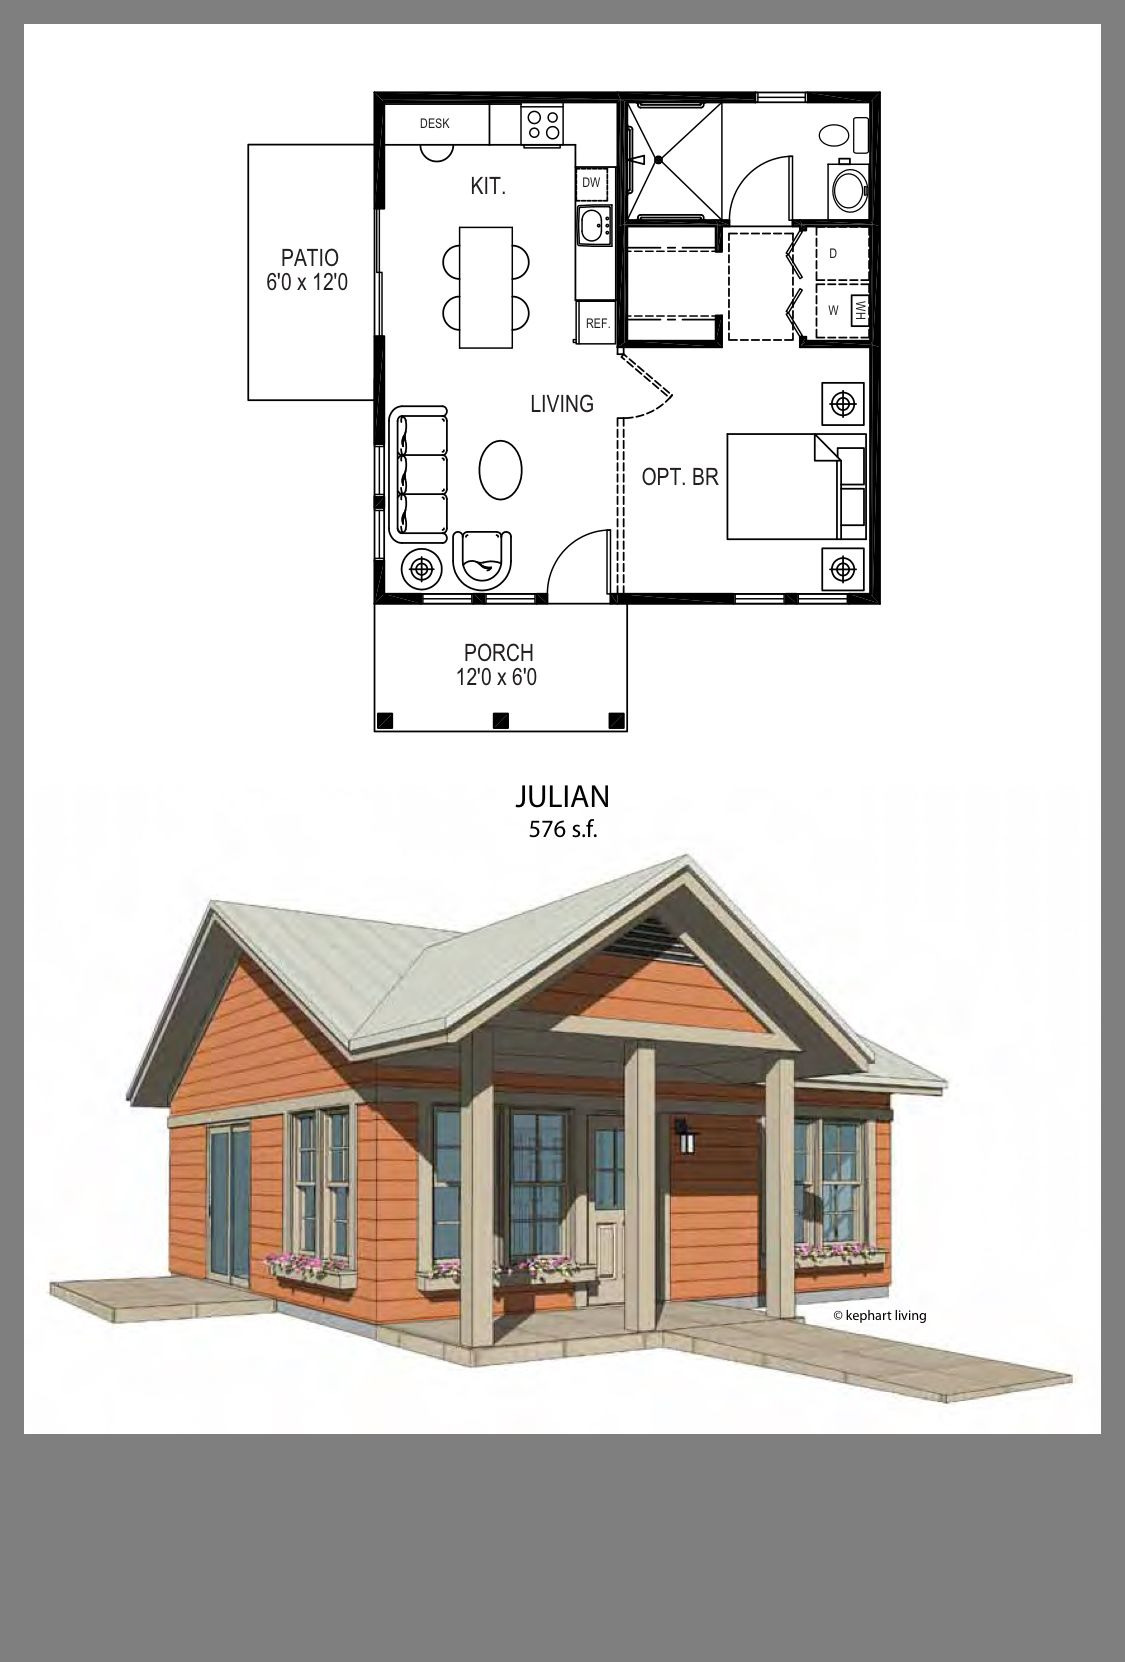 Best Small House Plans New Julian Small but Efficient